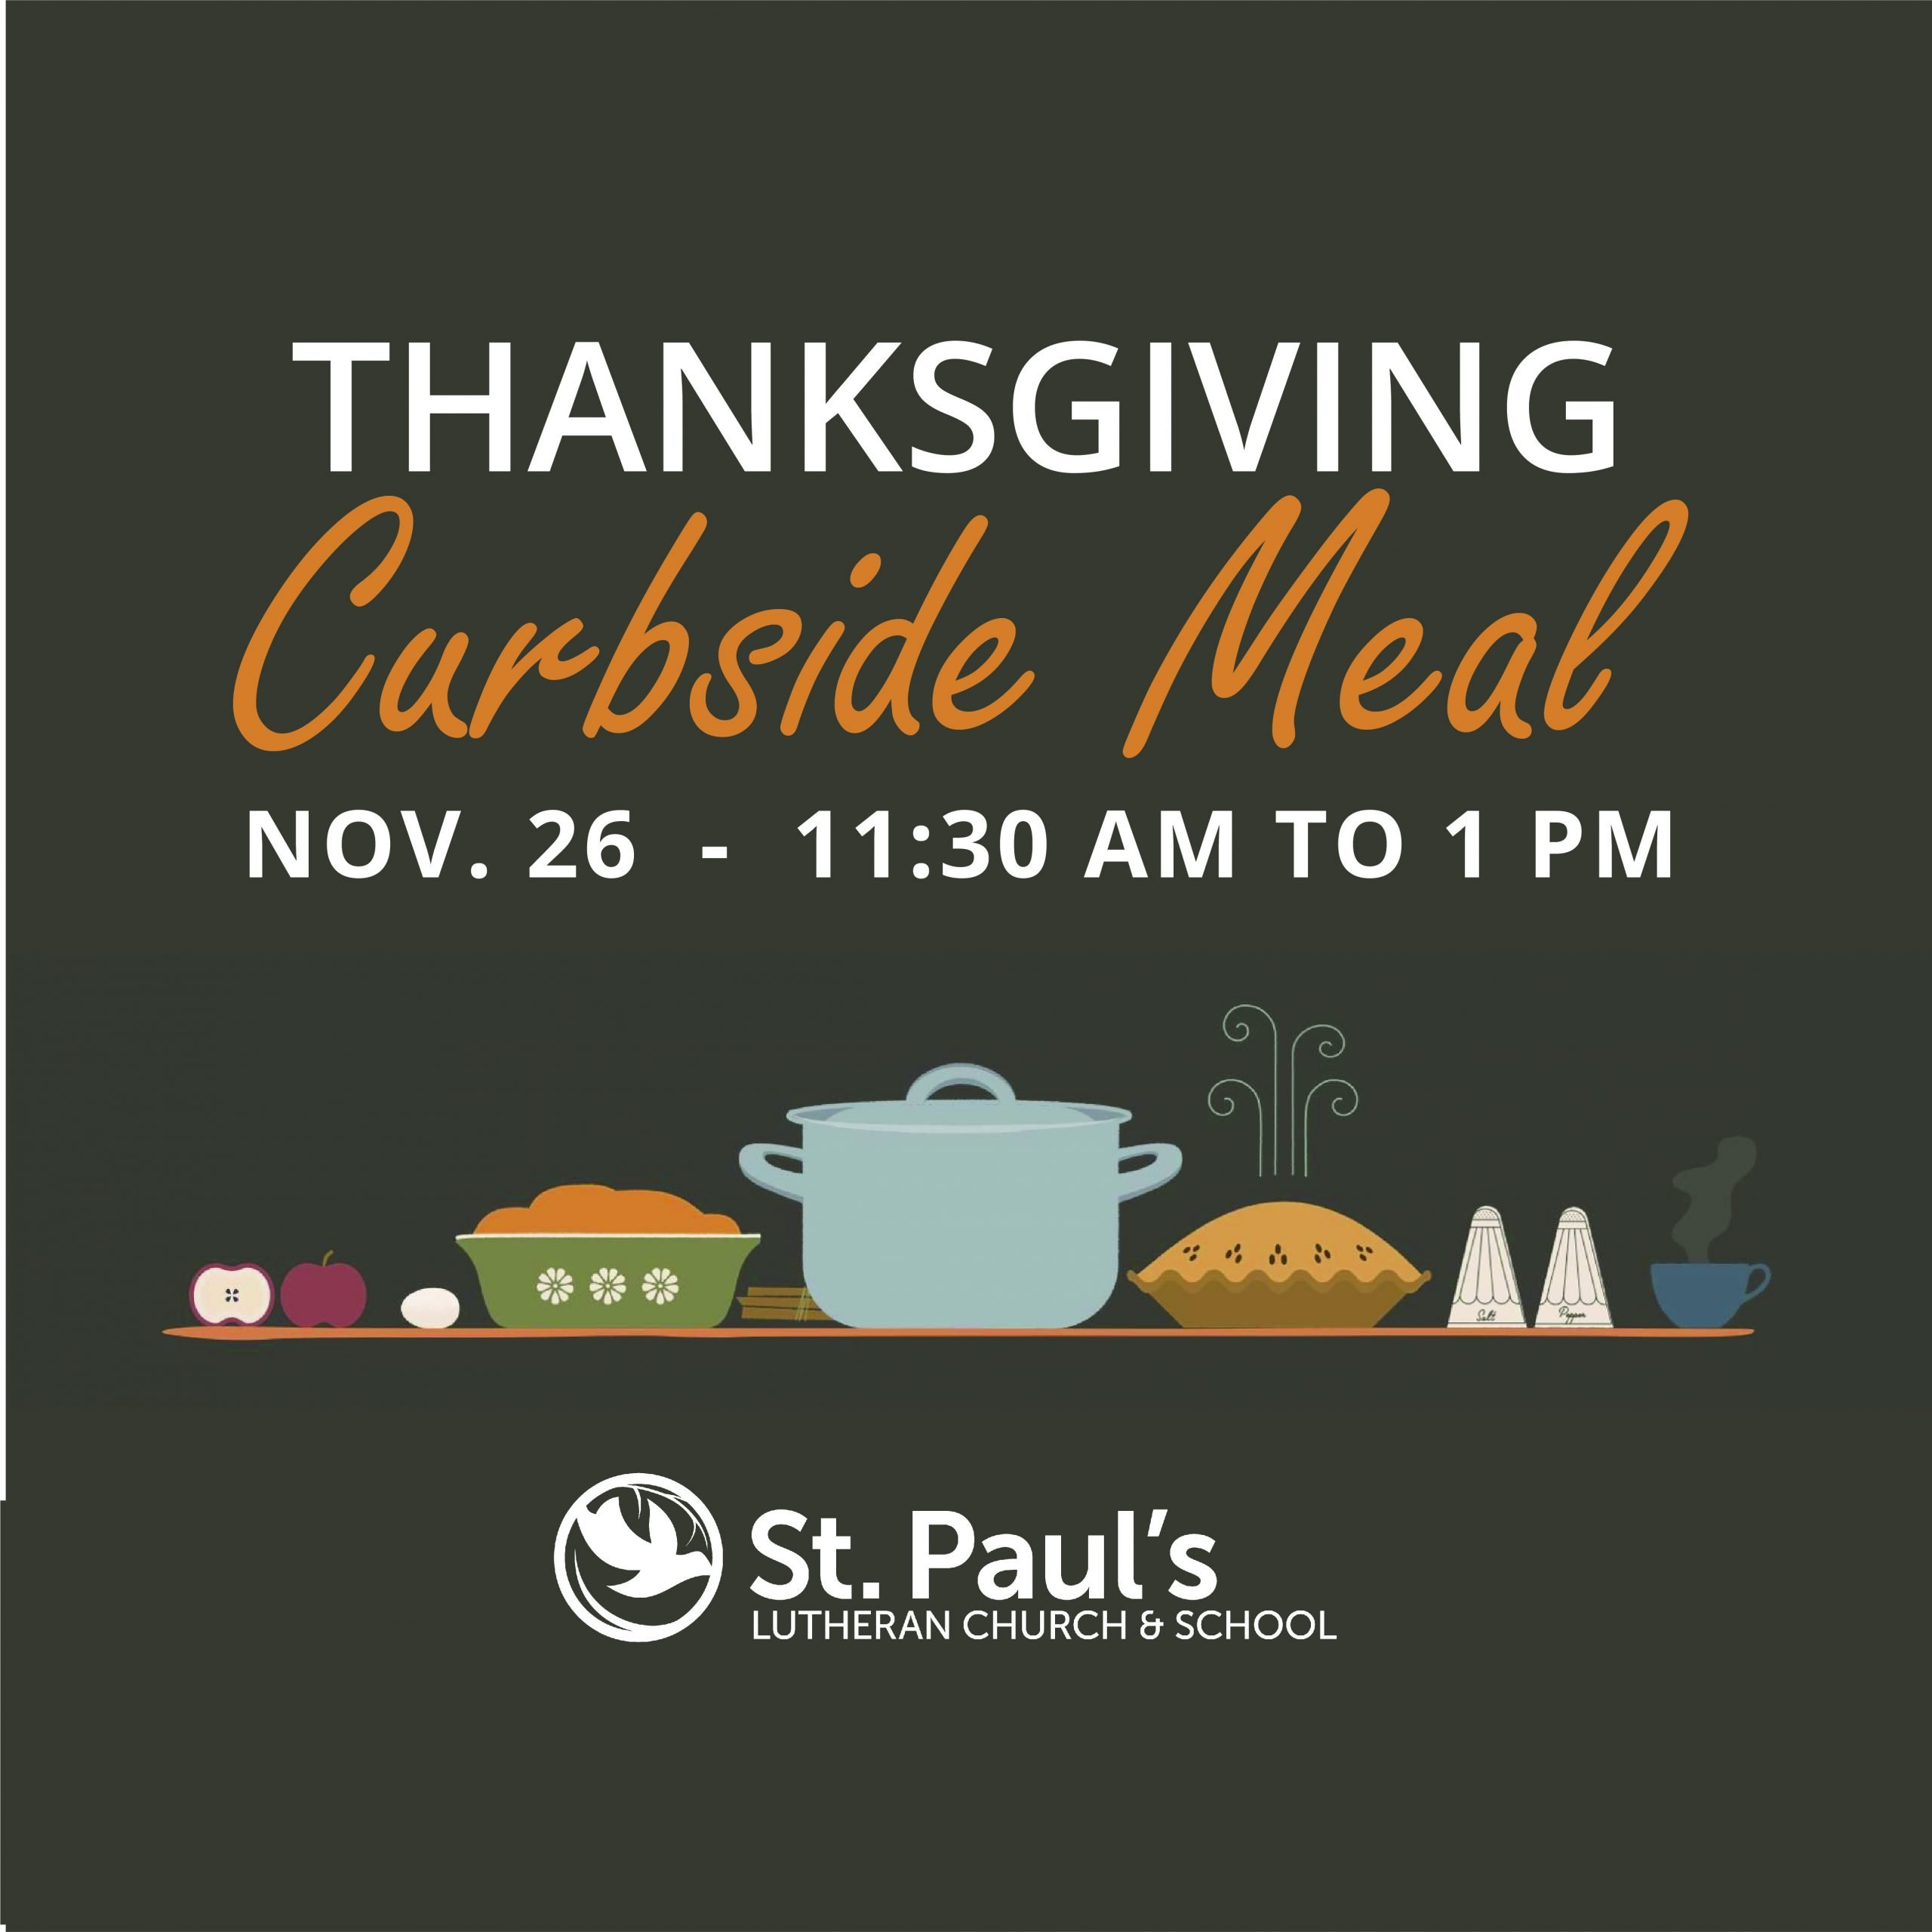 2020-11-26 Thanksgiving Curbside Meal-04